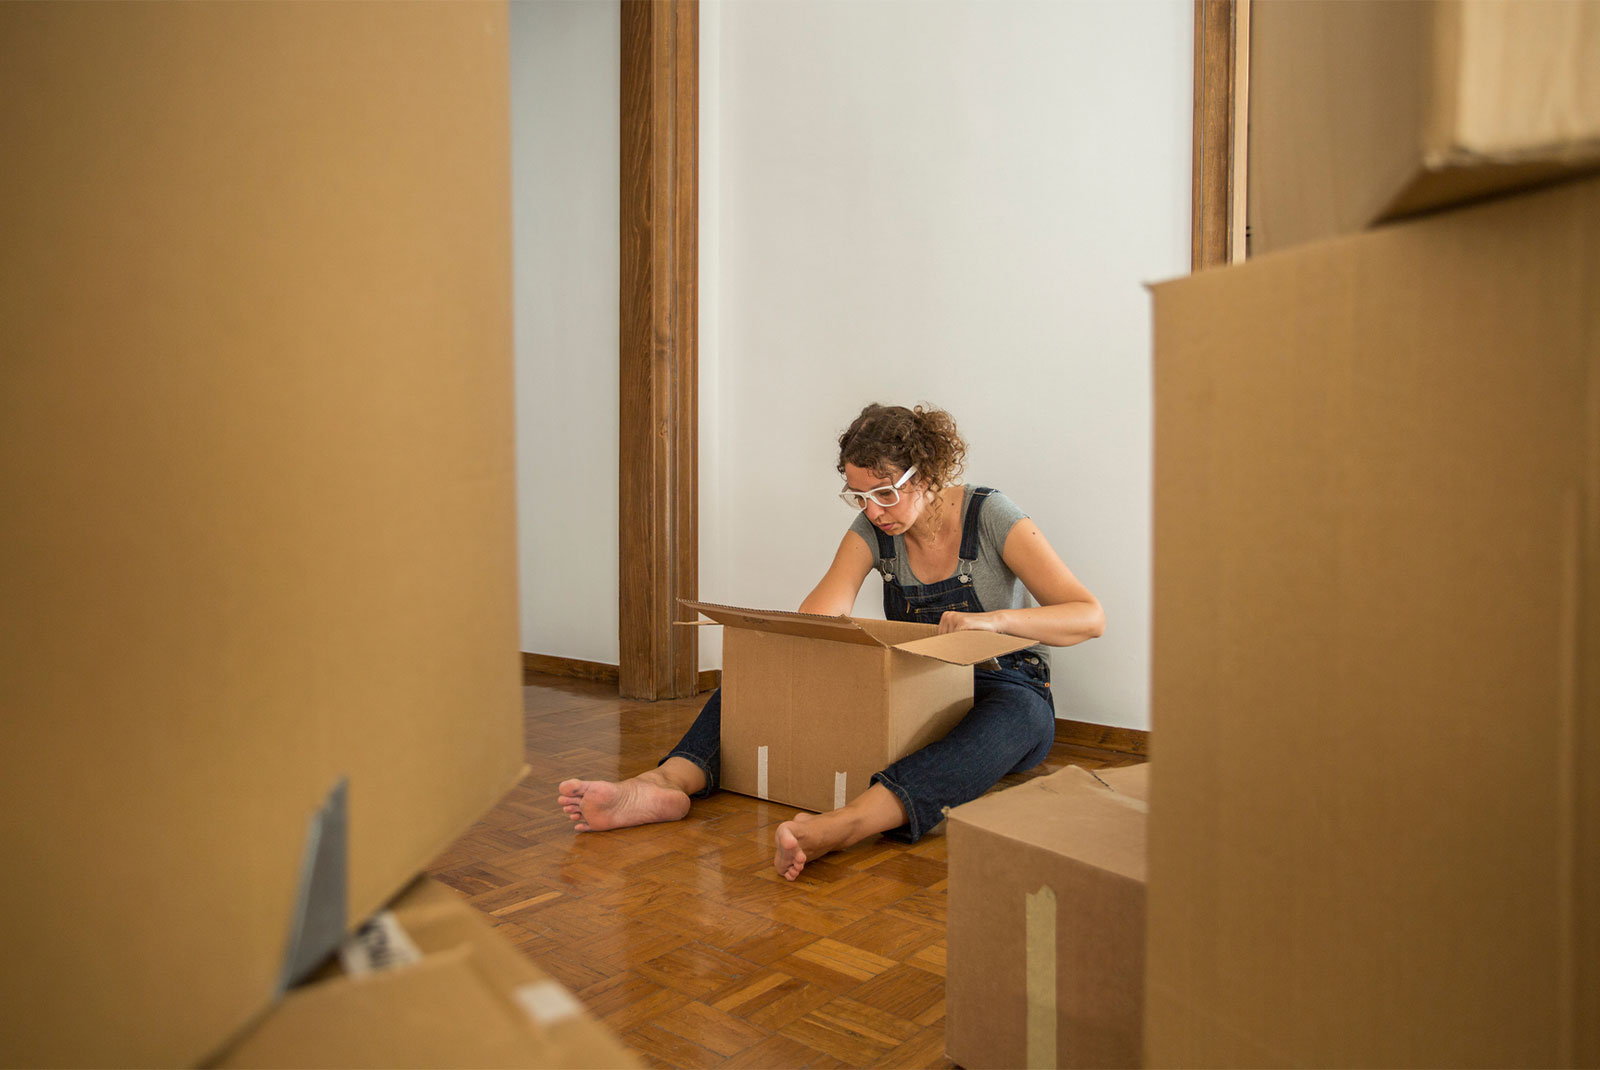 lady in dungarees looking inside a box for help as a first time homebuyer